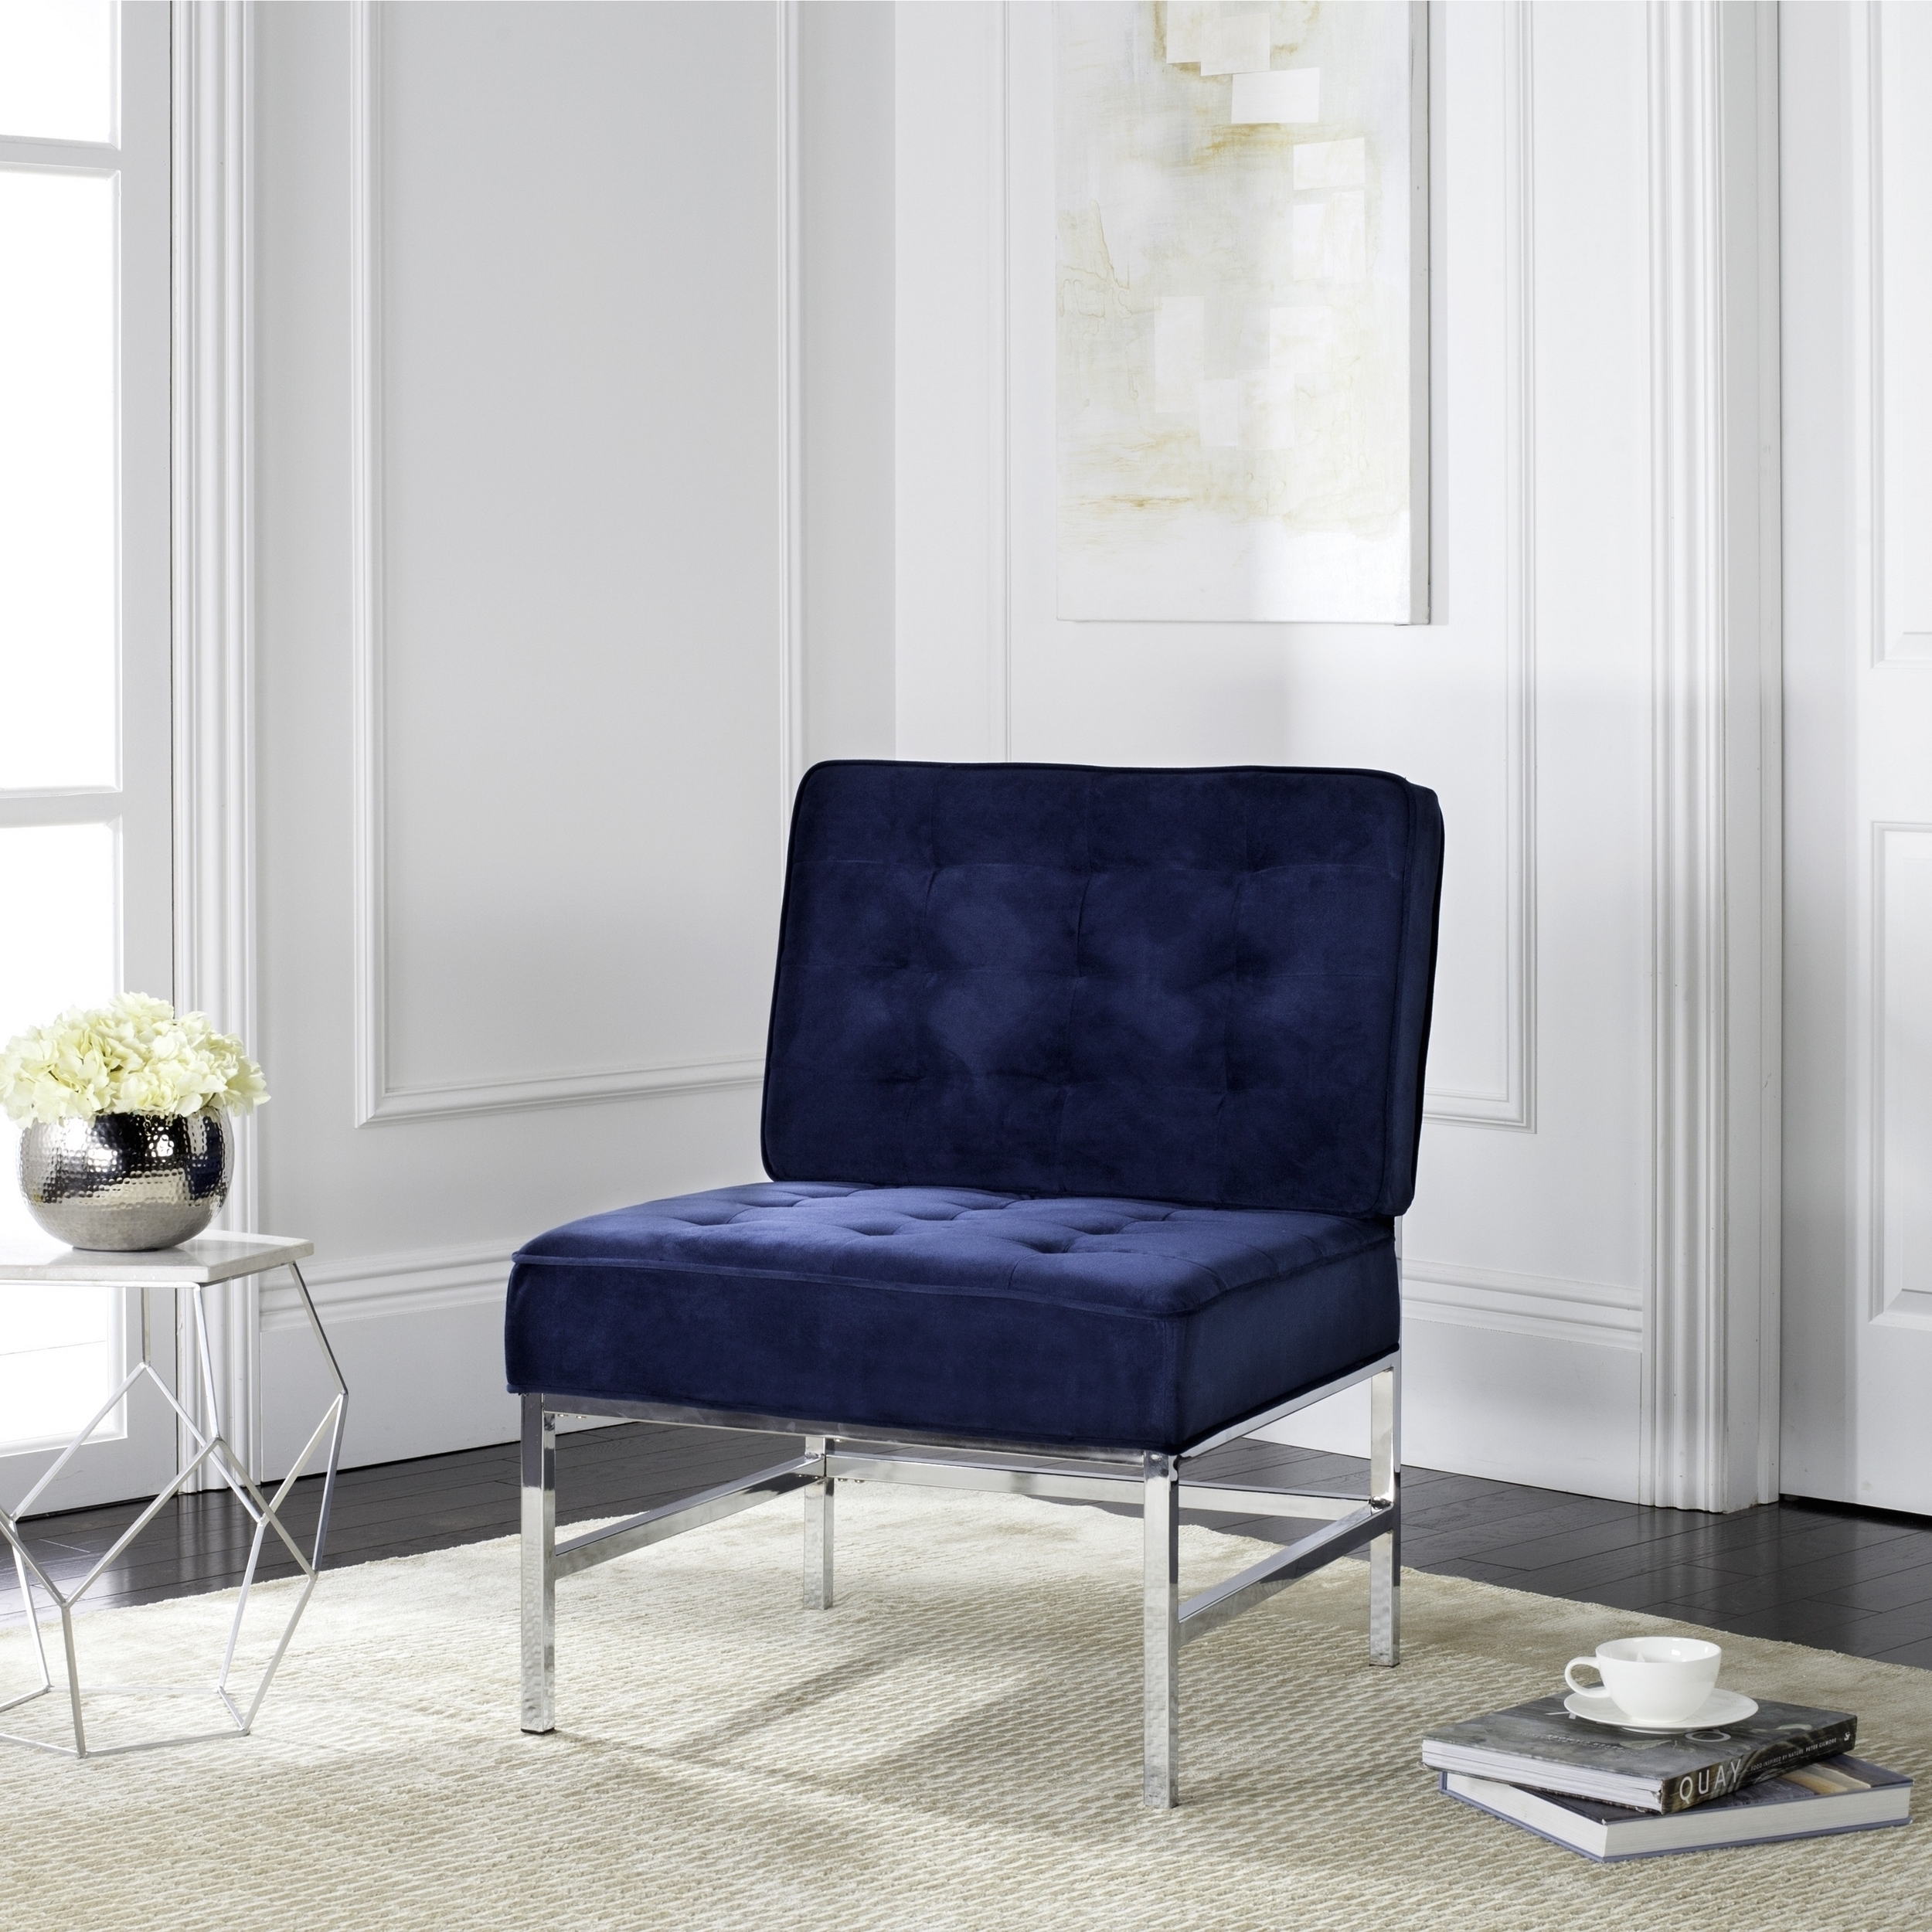 Preferred Ansel Blue Velvet Tufted Accent Chair Contemporary Armless Sofa Intended For Accent Sofa Chairs (View 14 of 15)